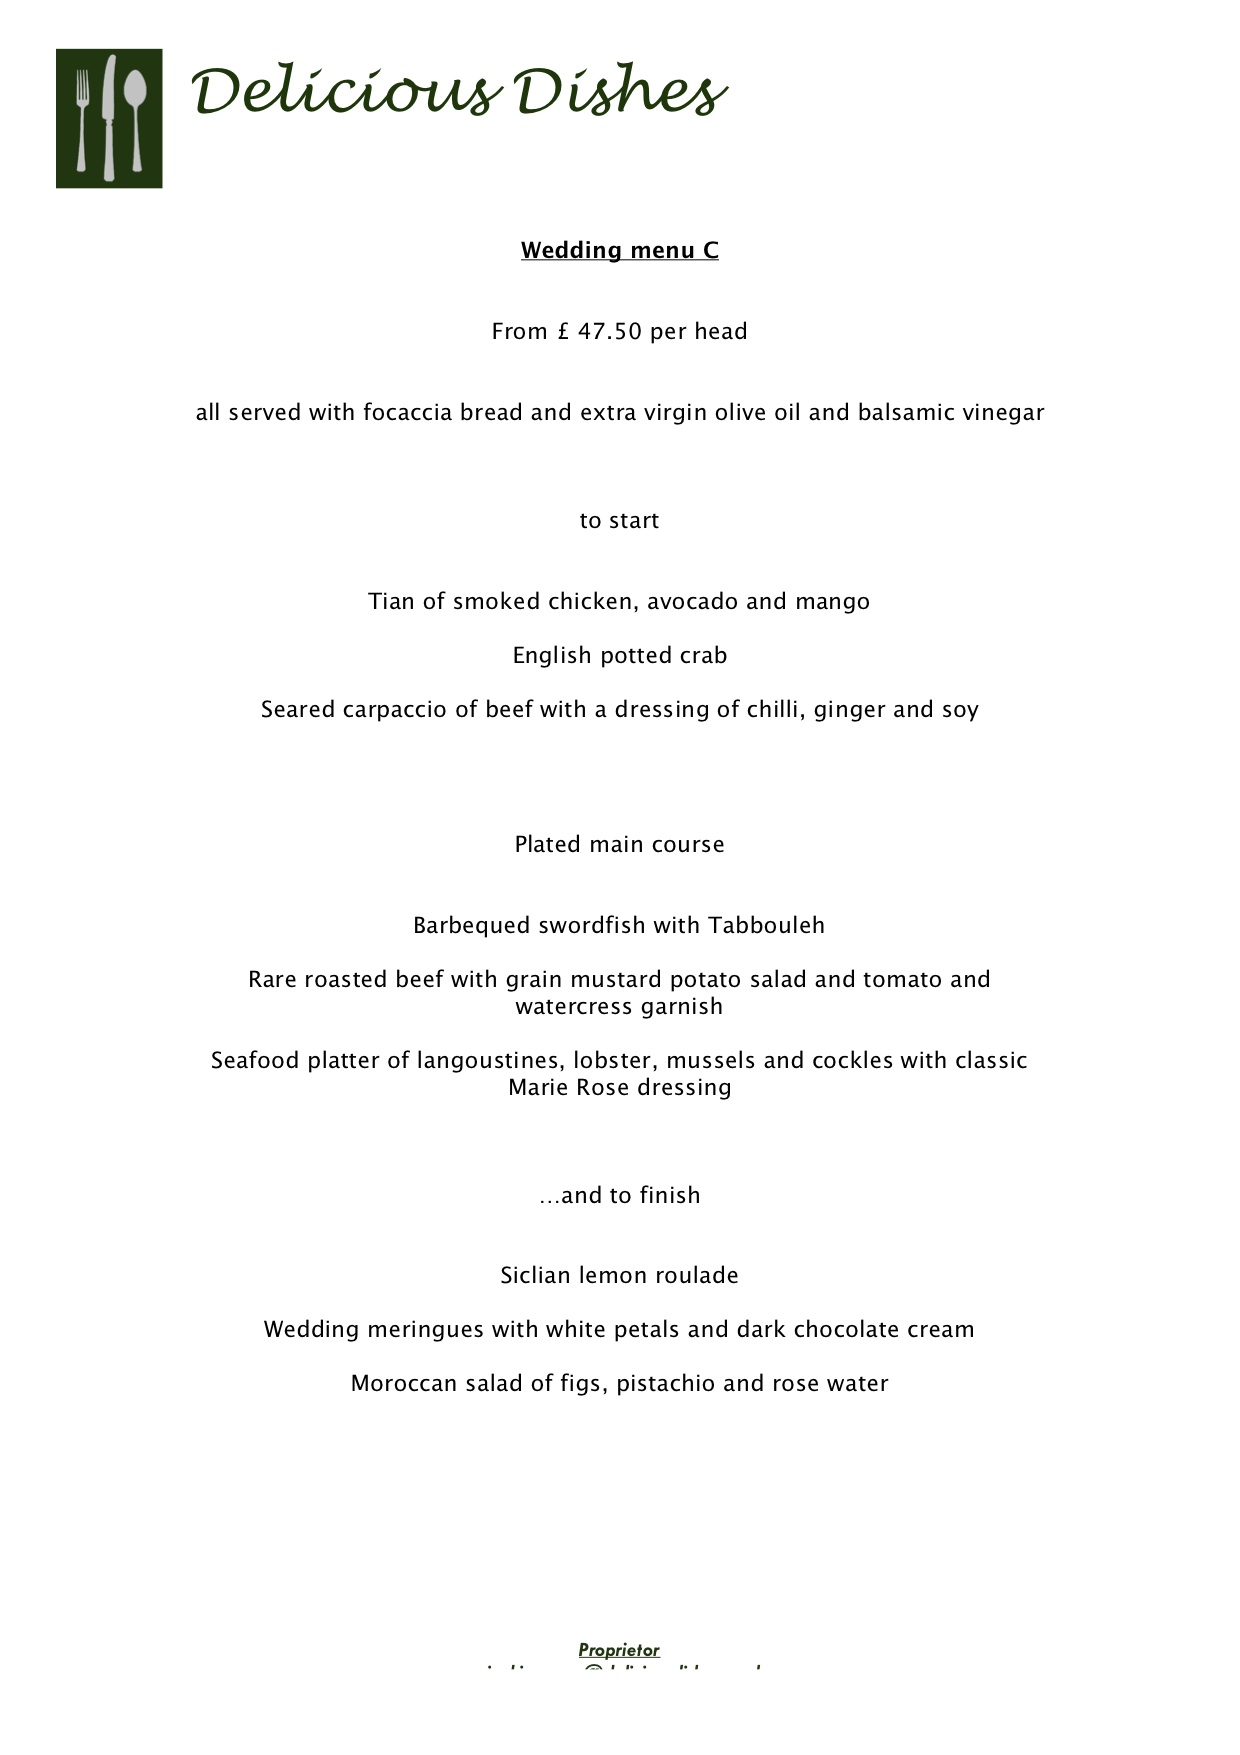 wedding-menu-C-From-£47.50-per-head